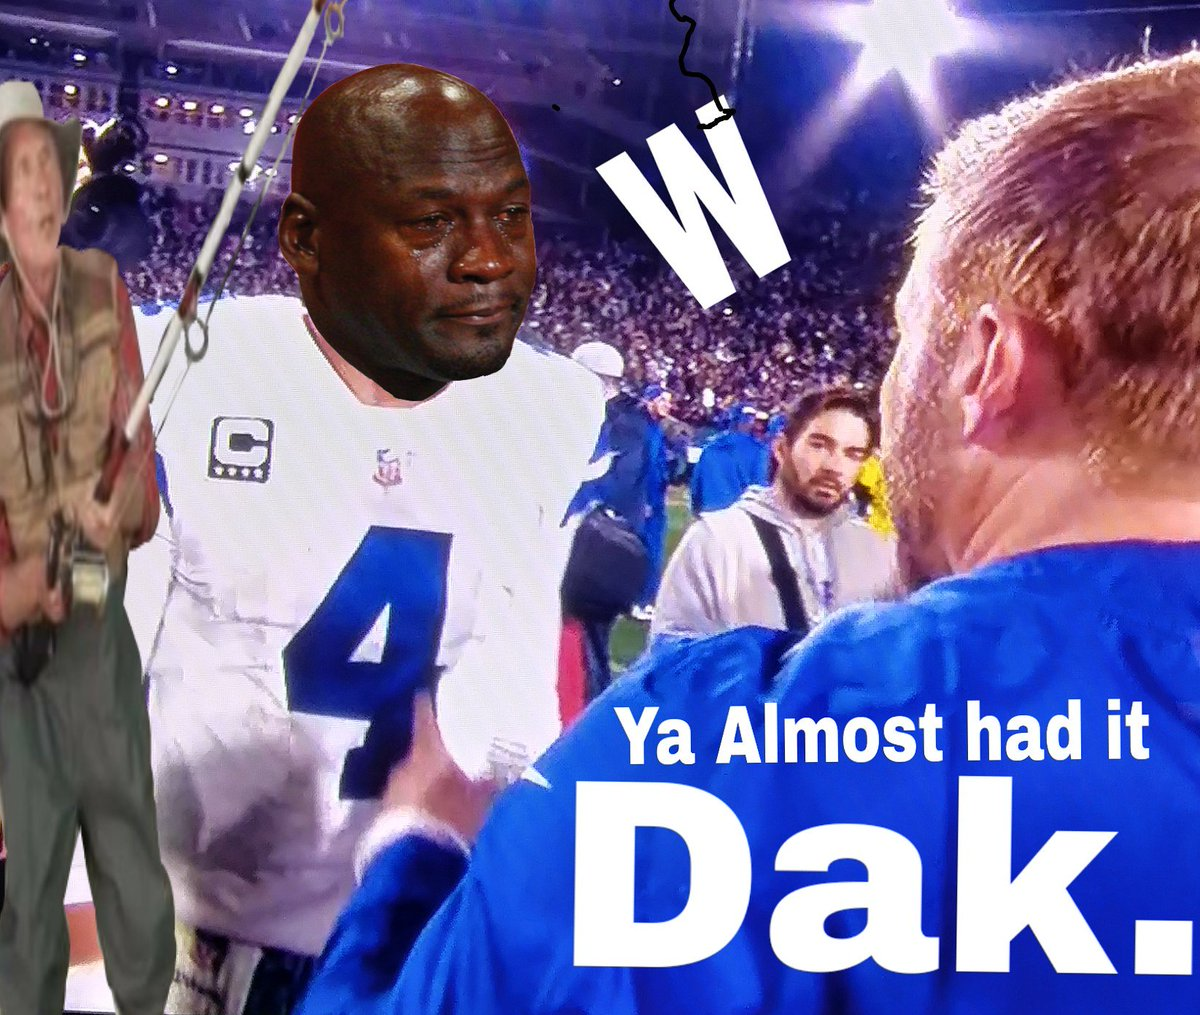 Poor Guy.. He just couldn&#39;t make it happen.. Dak is NOT their guy long term. With that being said... Hope they give him a 5 year deal.. #FlyEaglesFly  #DallasSucks #BetterLuckNextYear <br>http://pic.twitter.com/h9cEcb9W93